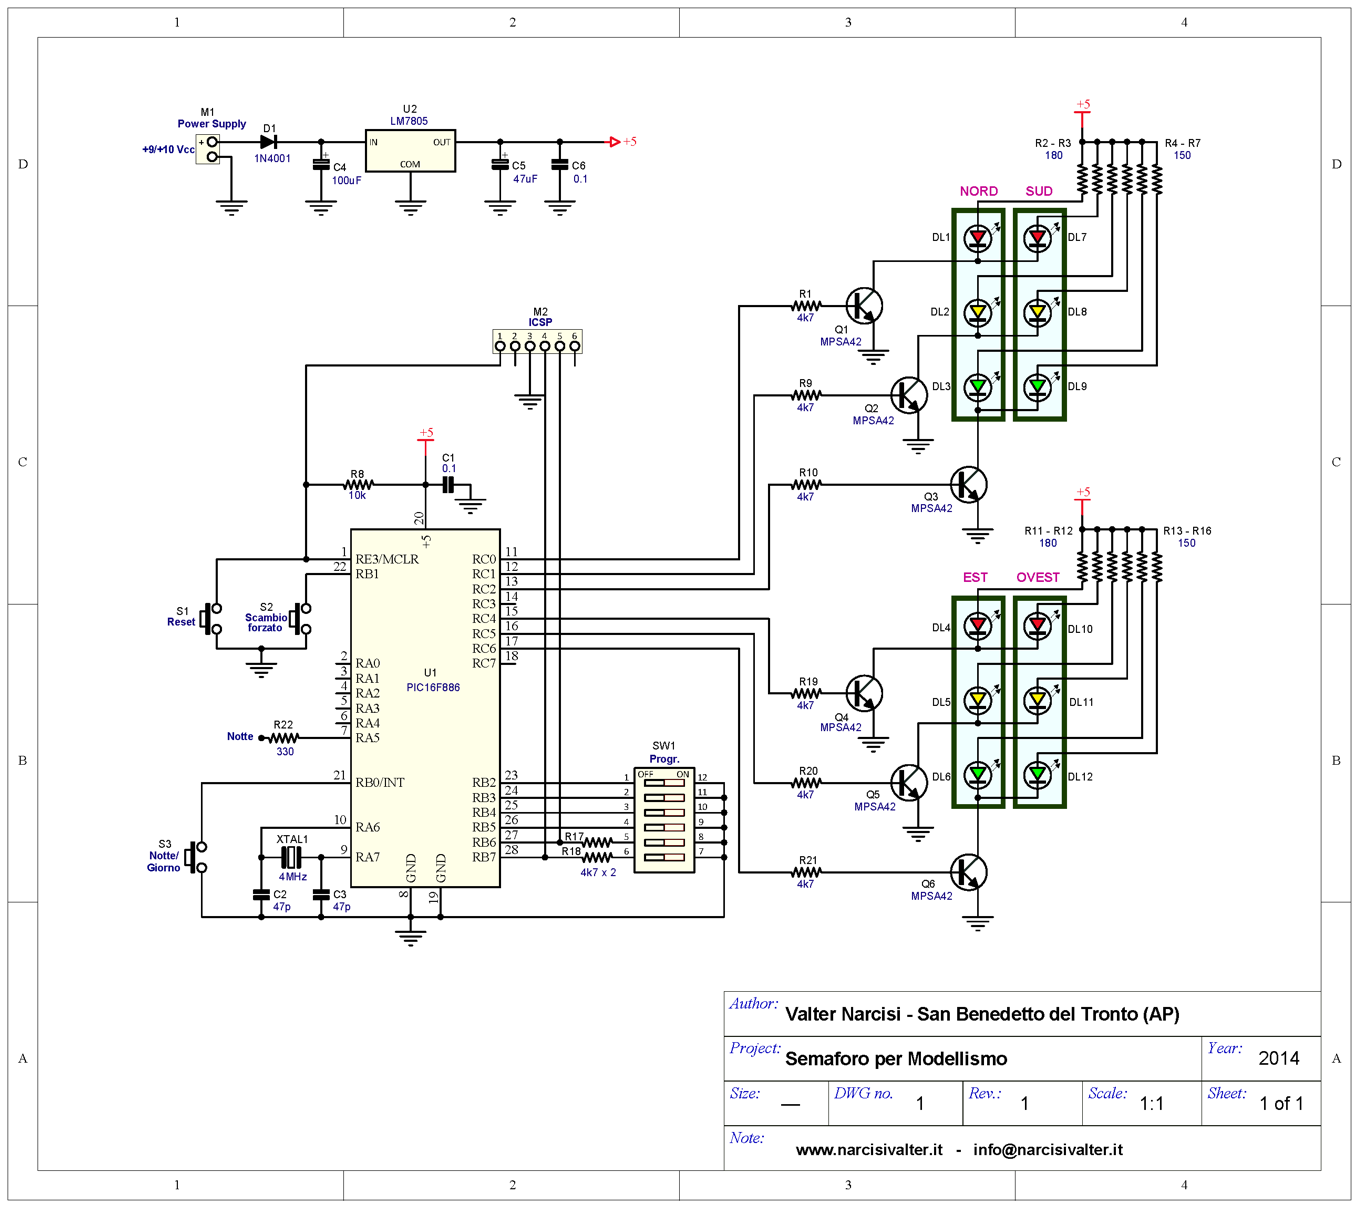 Schema Elettrico Pulsante : Way traffic light for modeling semaforo per modellismo